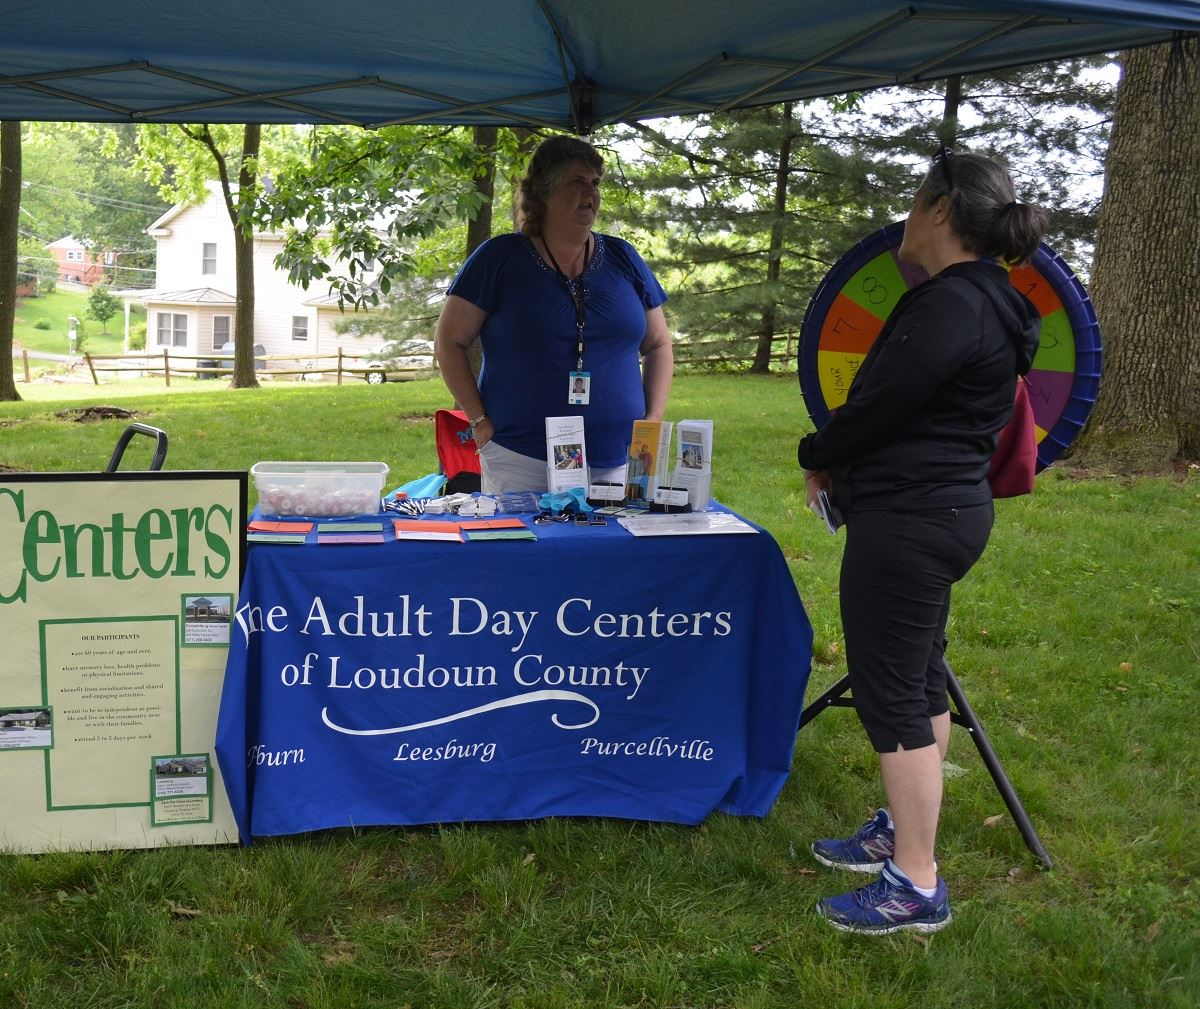 Vendor, Loudoun Adult Day Centers